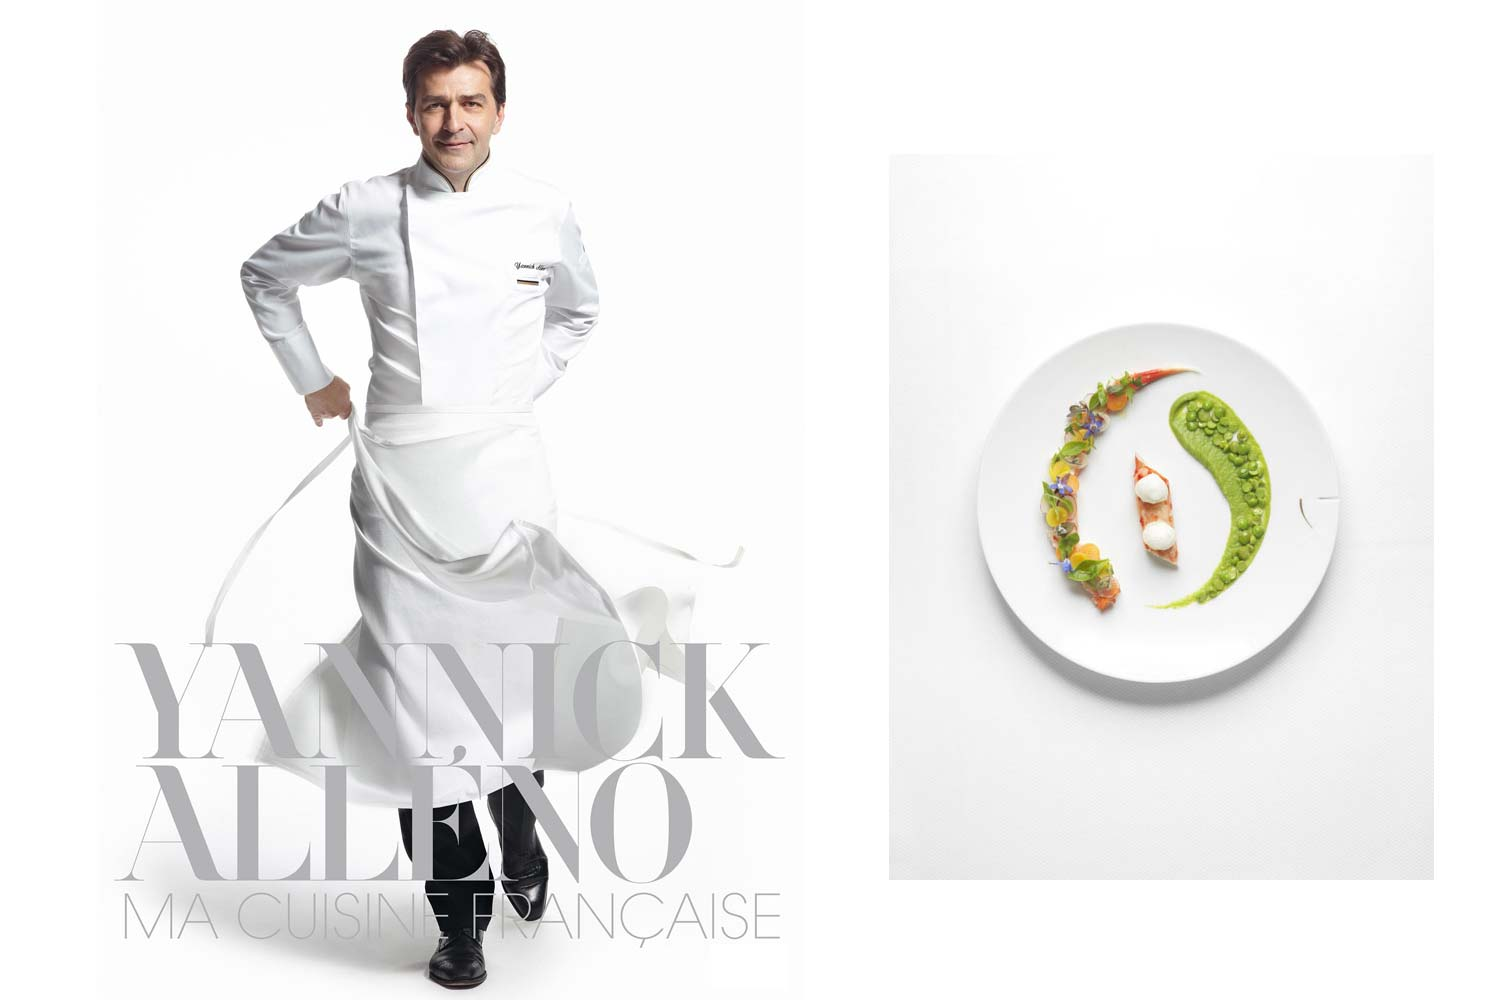 yannick alleno ma cuisine francaise